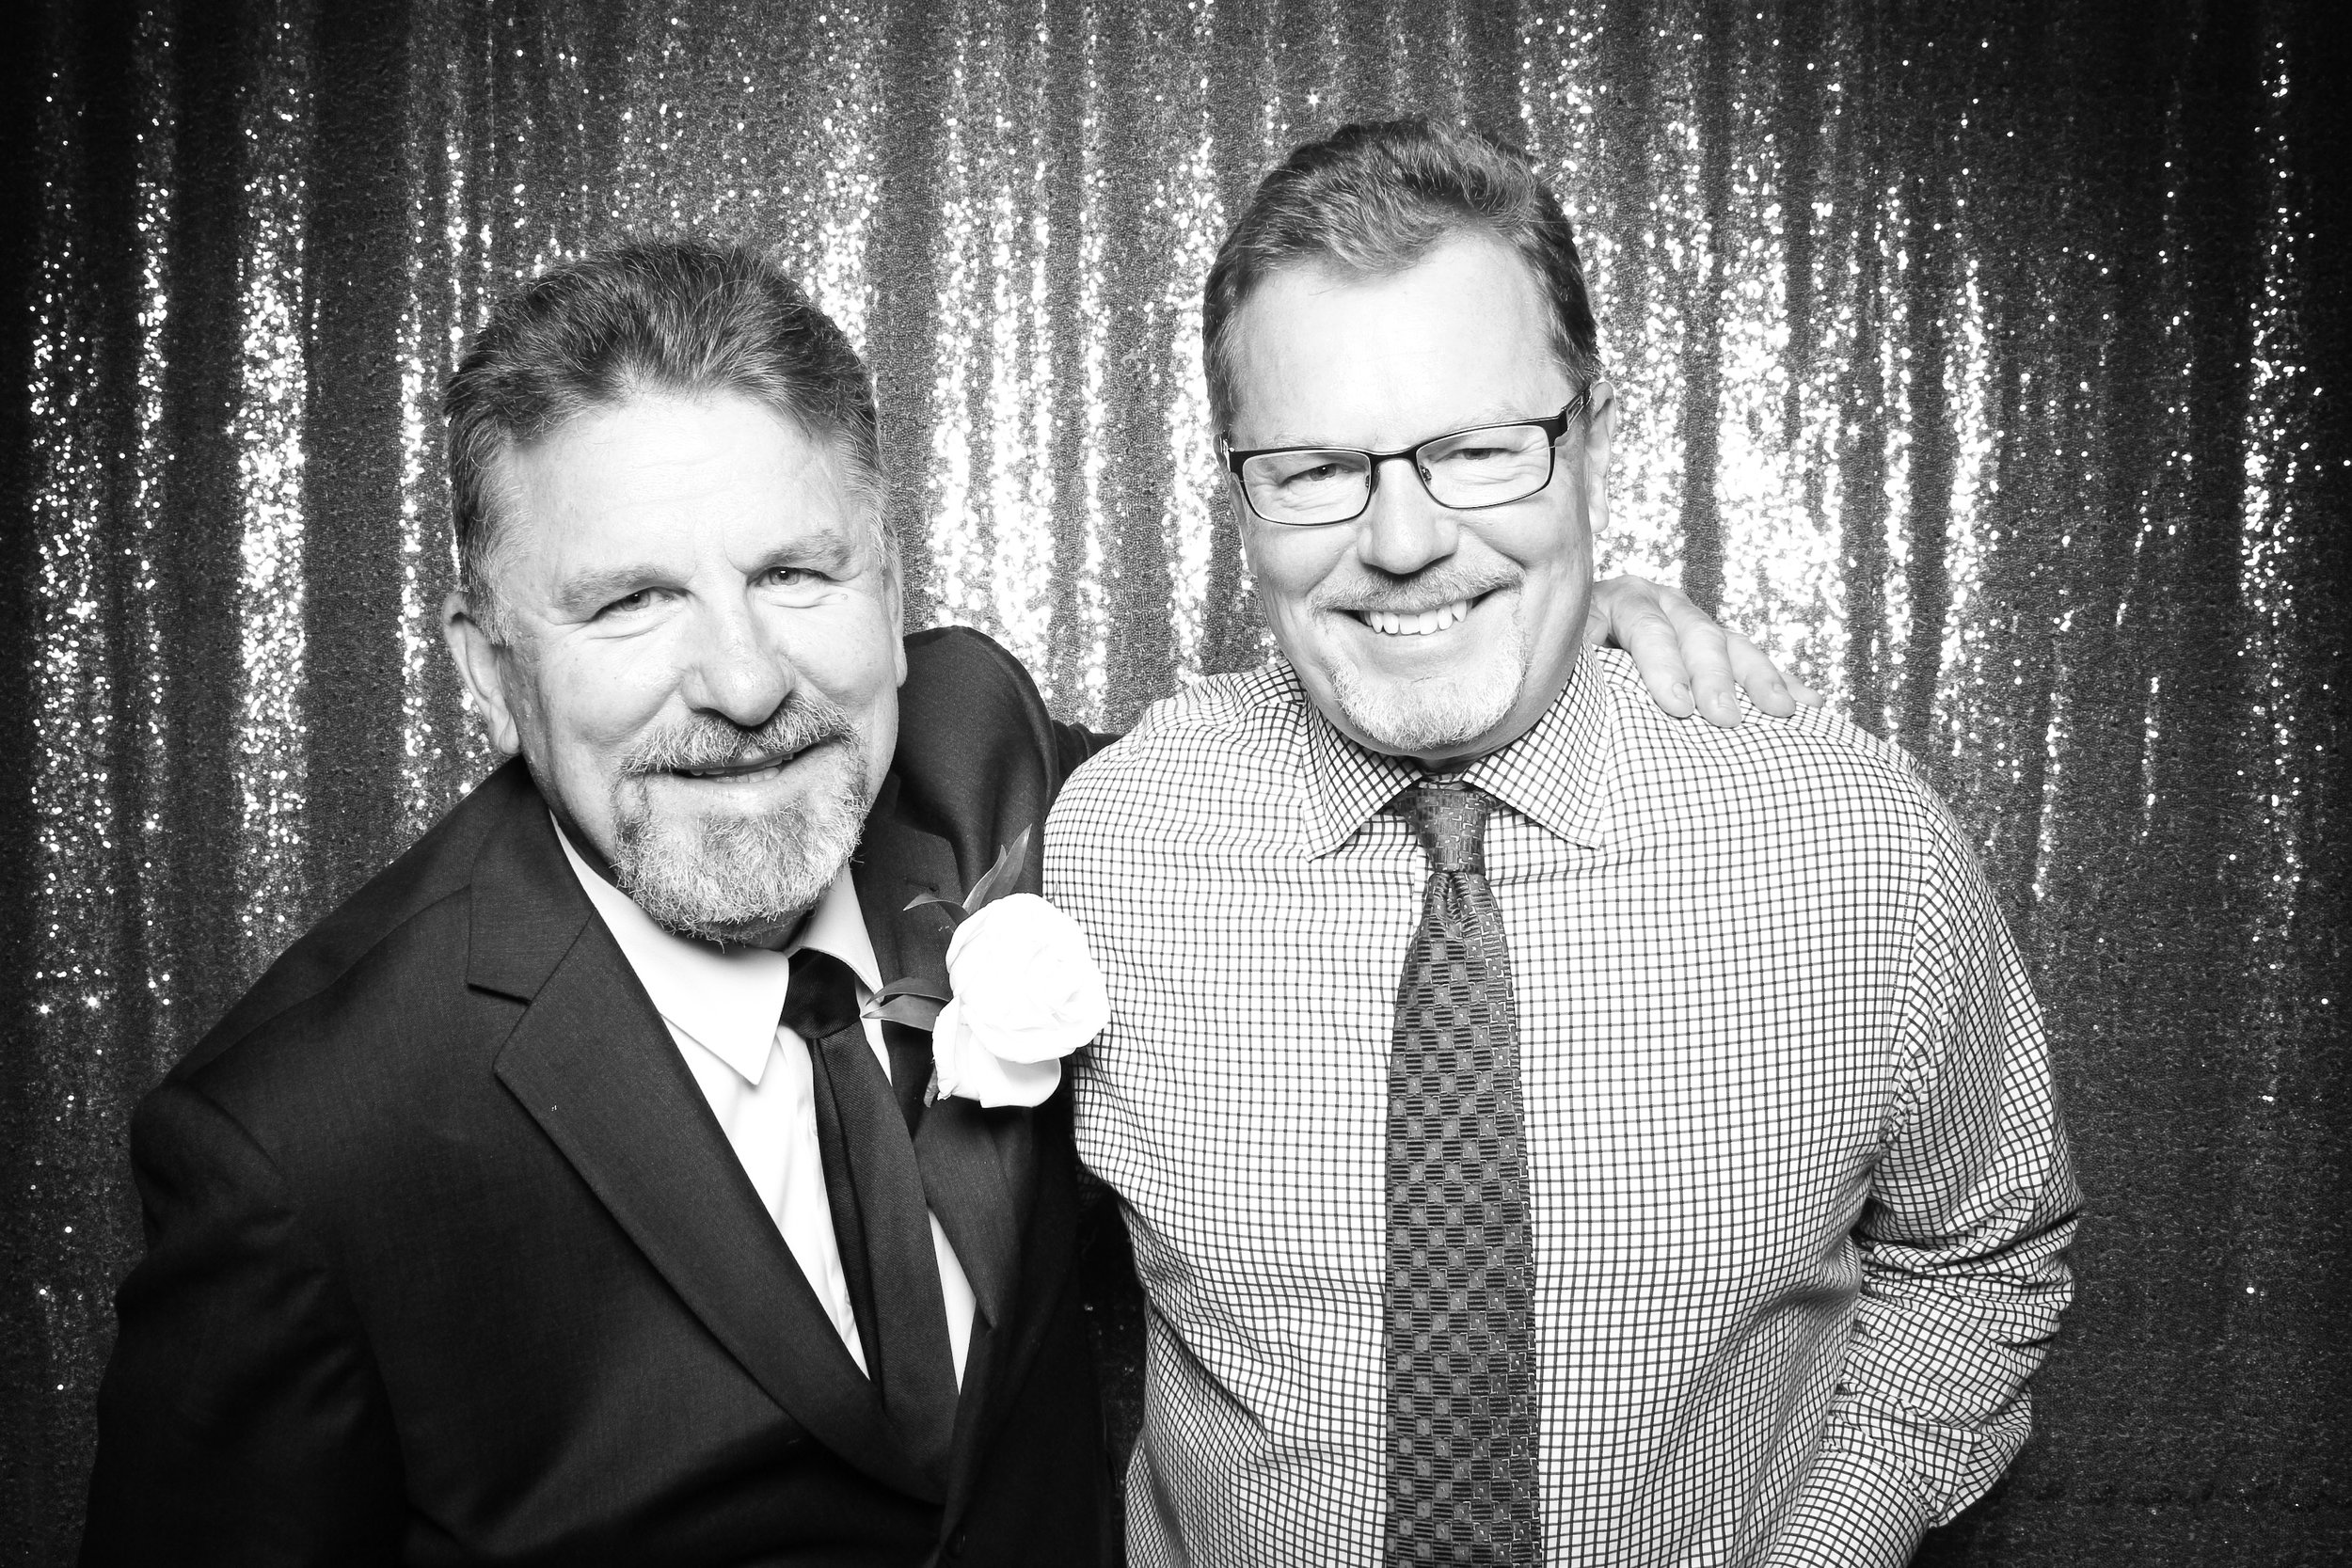 Chicago_Vintage_Wedding_Photobooth_Wisconsin_13.jpg